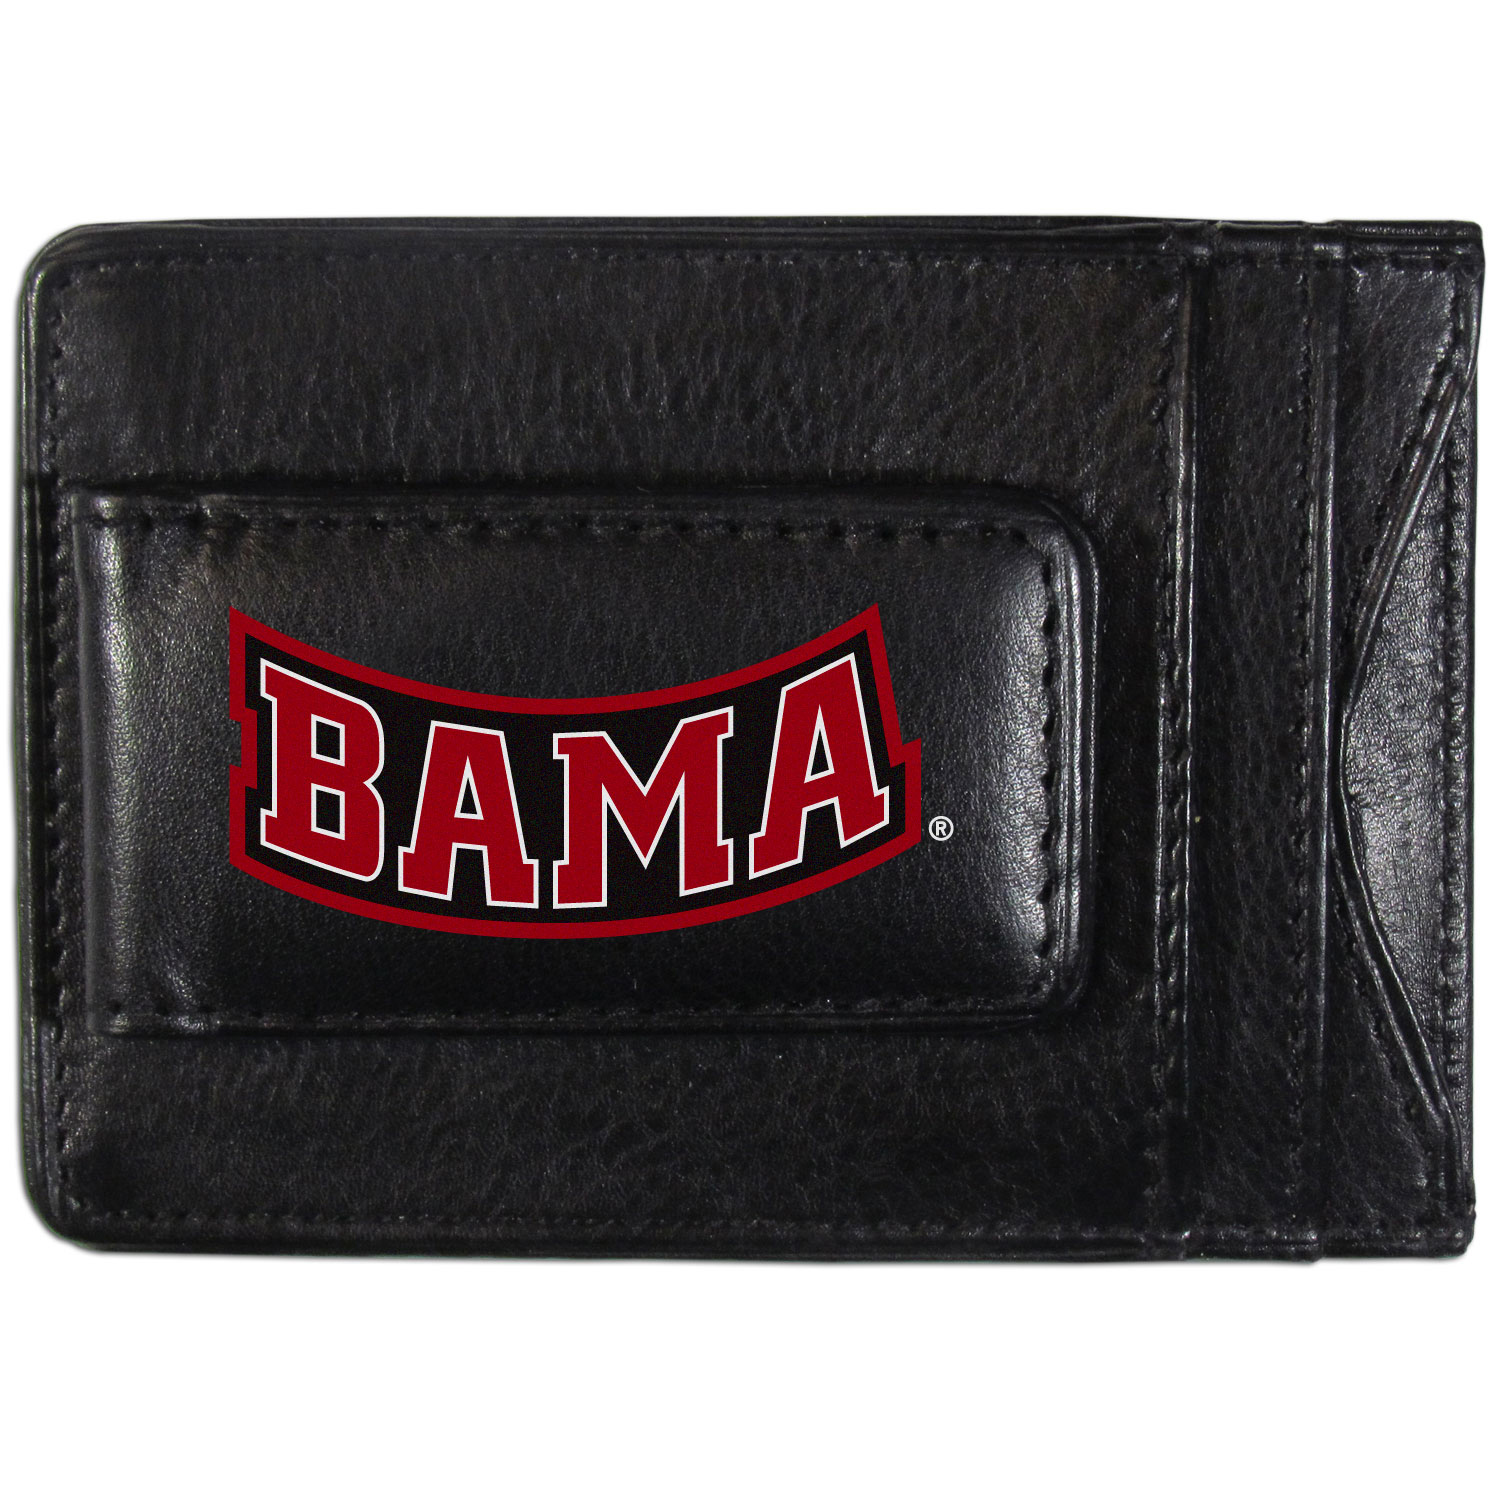 Alabama Crimson Tide Logo Leather Cash and Cardholder - This super slim leather wallet lets you have all the benefits of a money clip while keeping the organization of a wallet. On one side of this front pocket wallet there is a strong, magnetic money clip to keep your cash easily accessible and the?Alabama Crimson Tide team logo on the front. The versatile men's accessory is a perfect addition to your fan apparel.